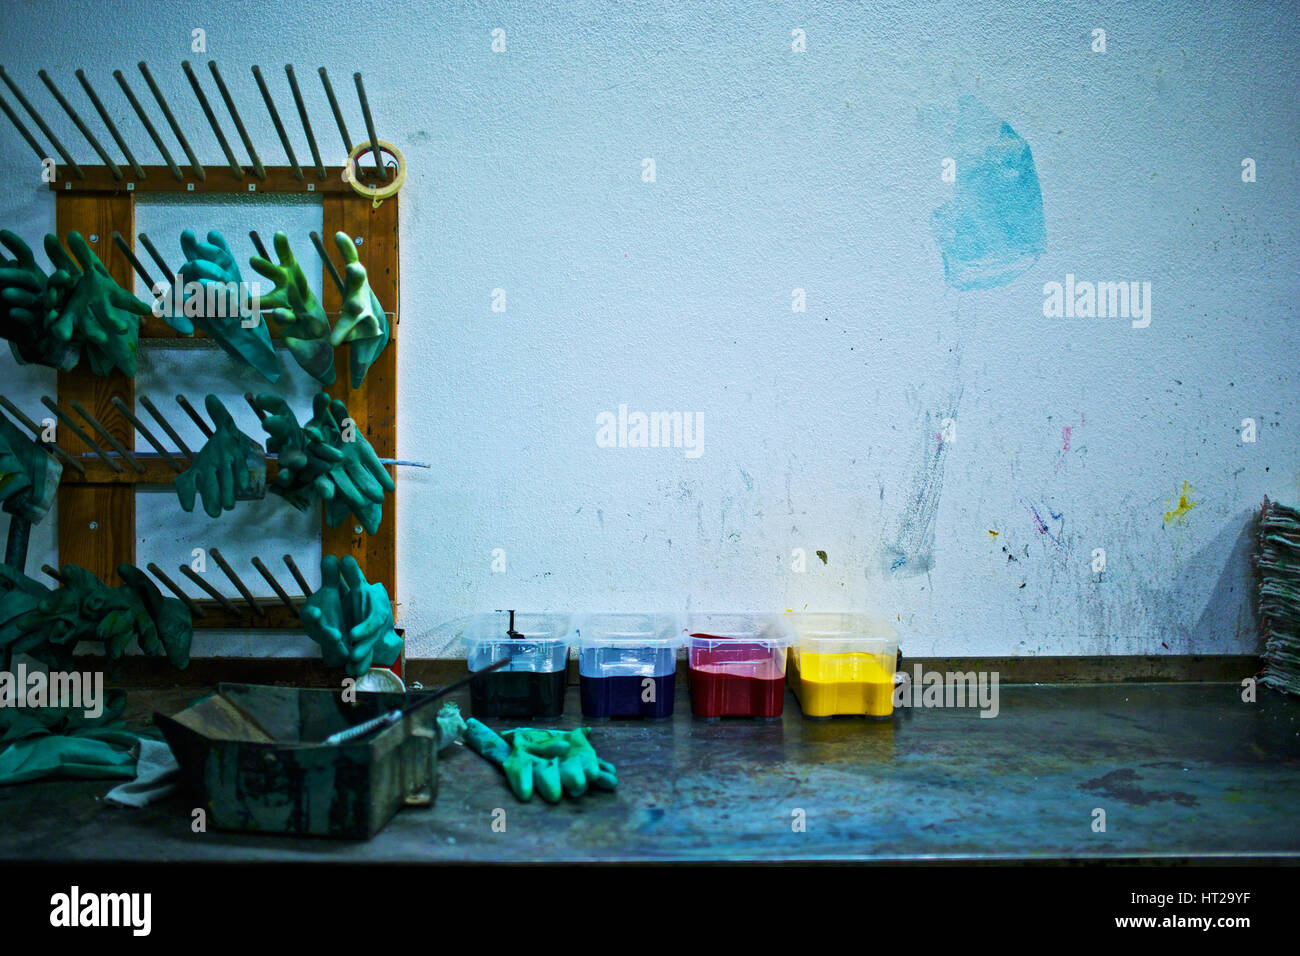 CMYK containers of paint and gloves inside a printing plant. - Stock Image